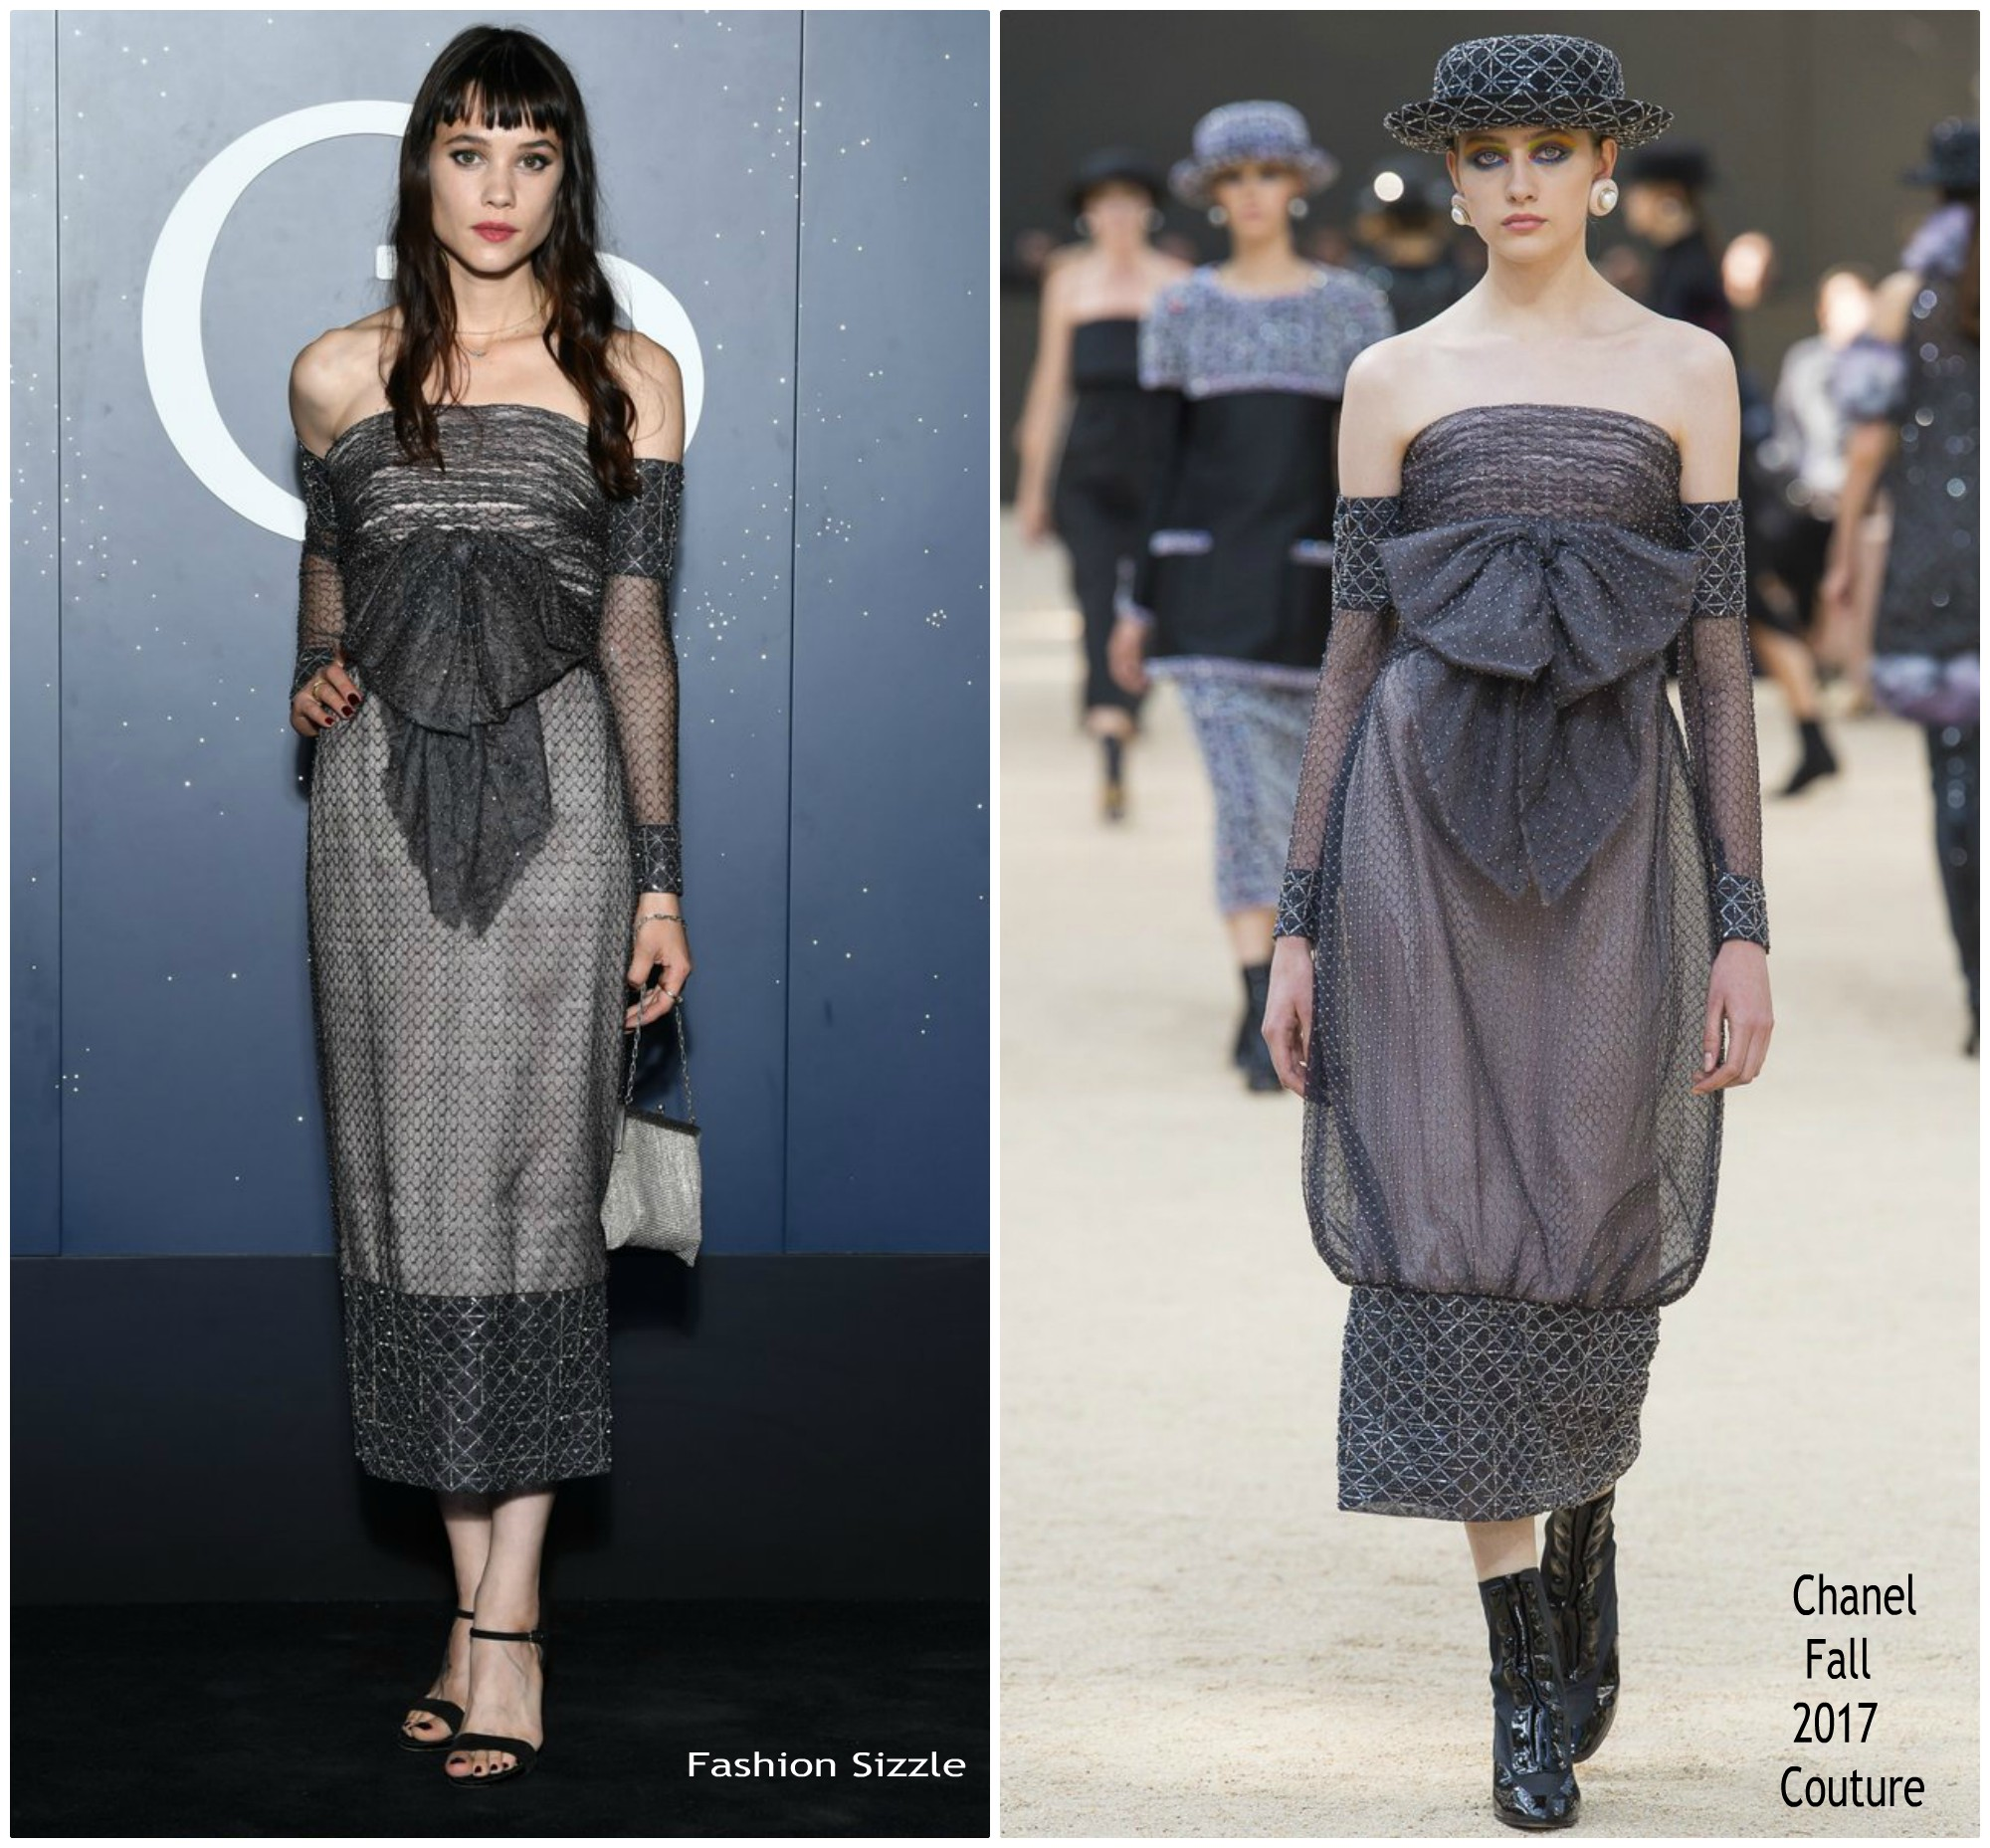 astrid-berges-frisbey-in-chanel-couture-opening-season-paris-opera-ballet